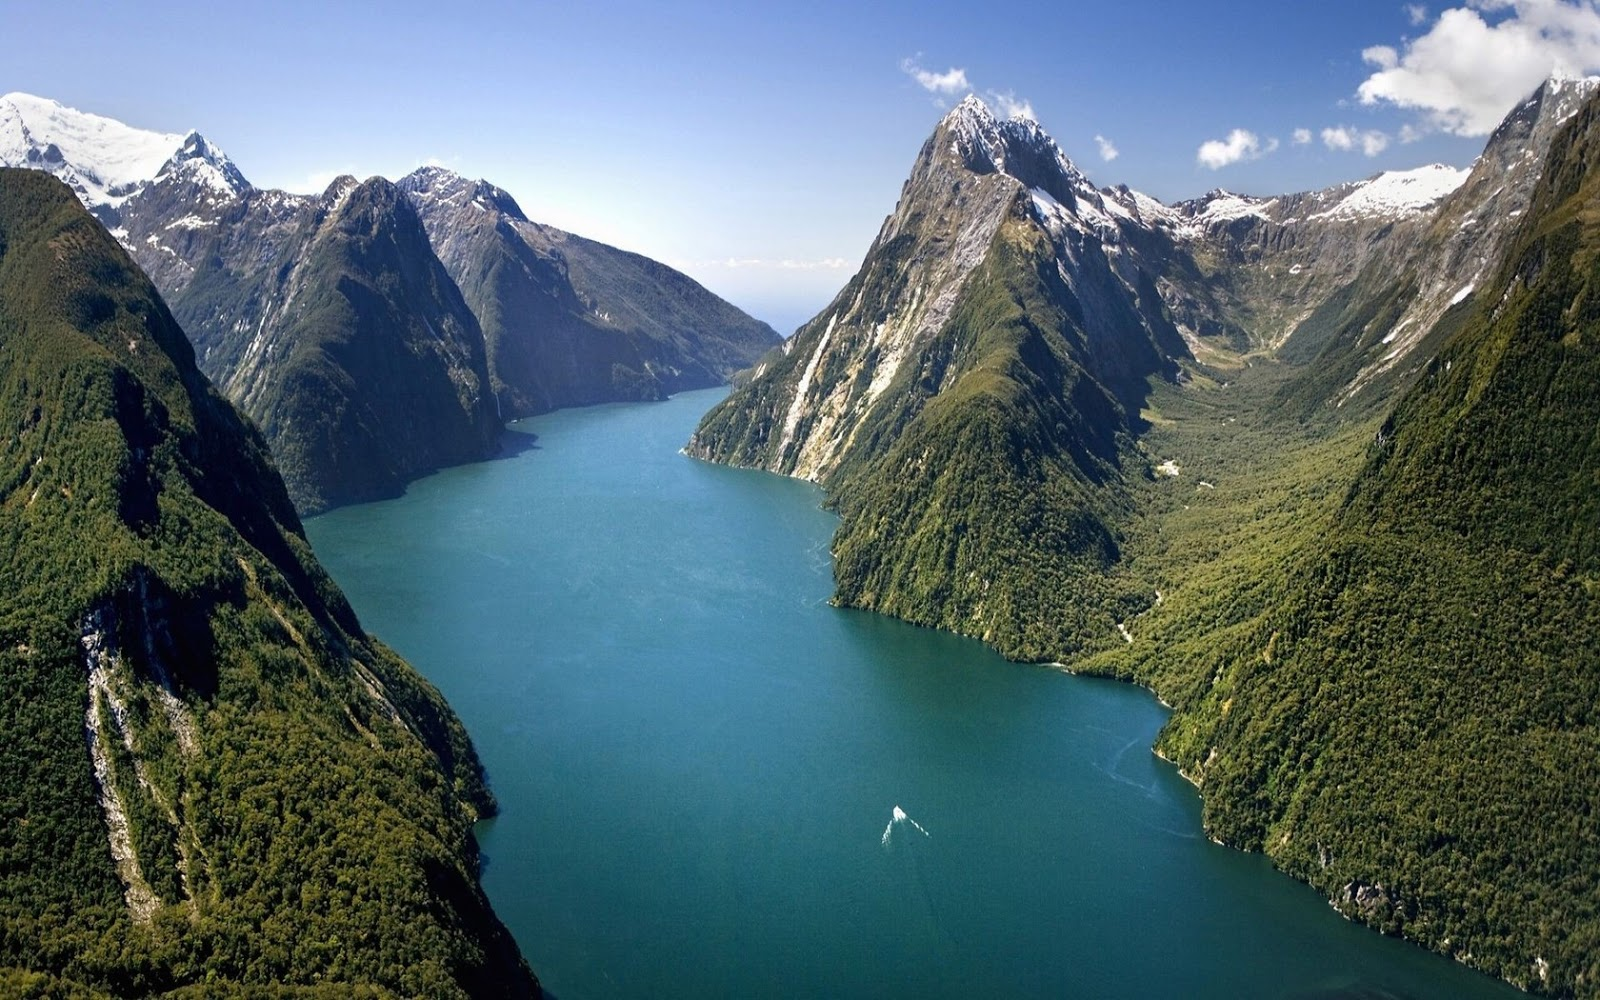 Milford Sound - Stunning Photos Reveal Why New Zealand Should Be On Your Must-Travel List